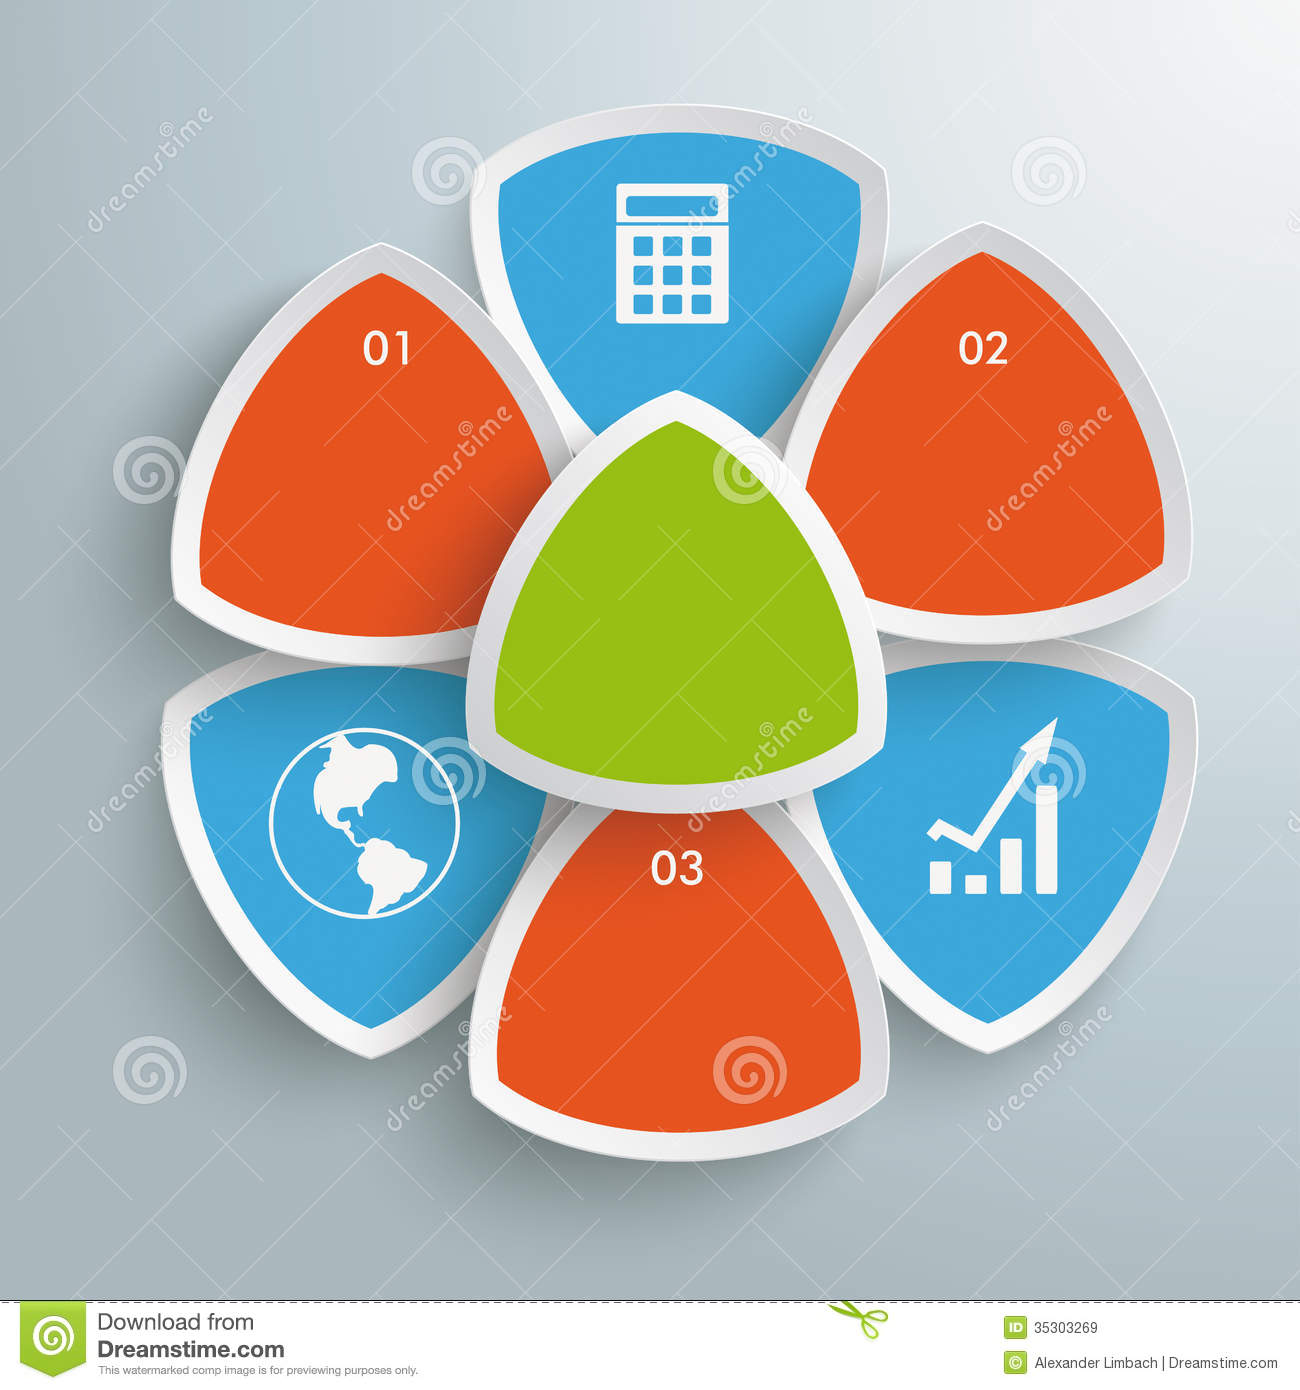 Infographic design on the grey background eps 10 vector file - Round Triangles Flower Infographic Piad Royalty Free Stock